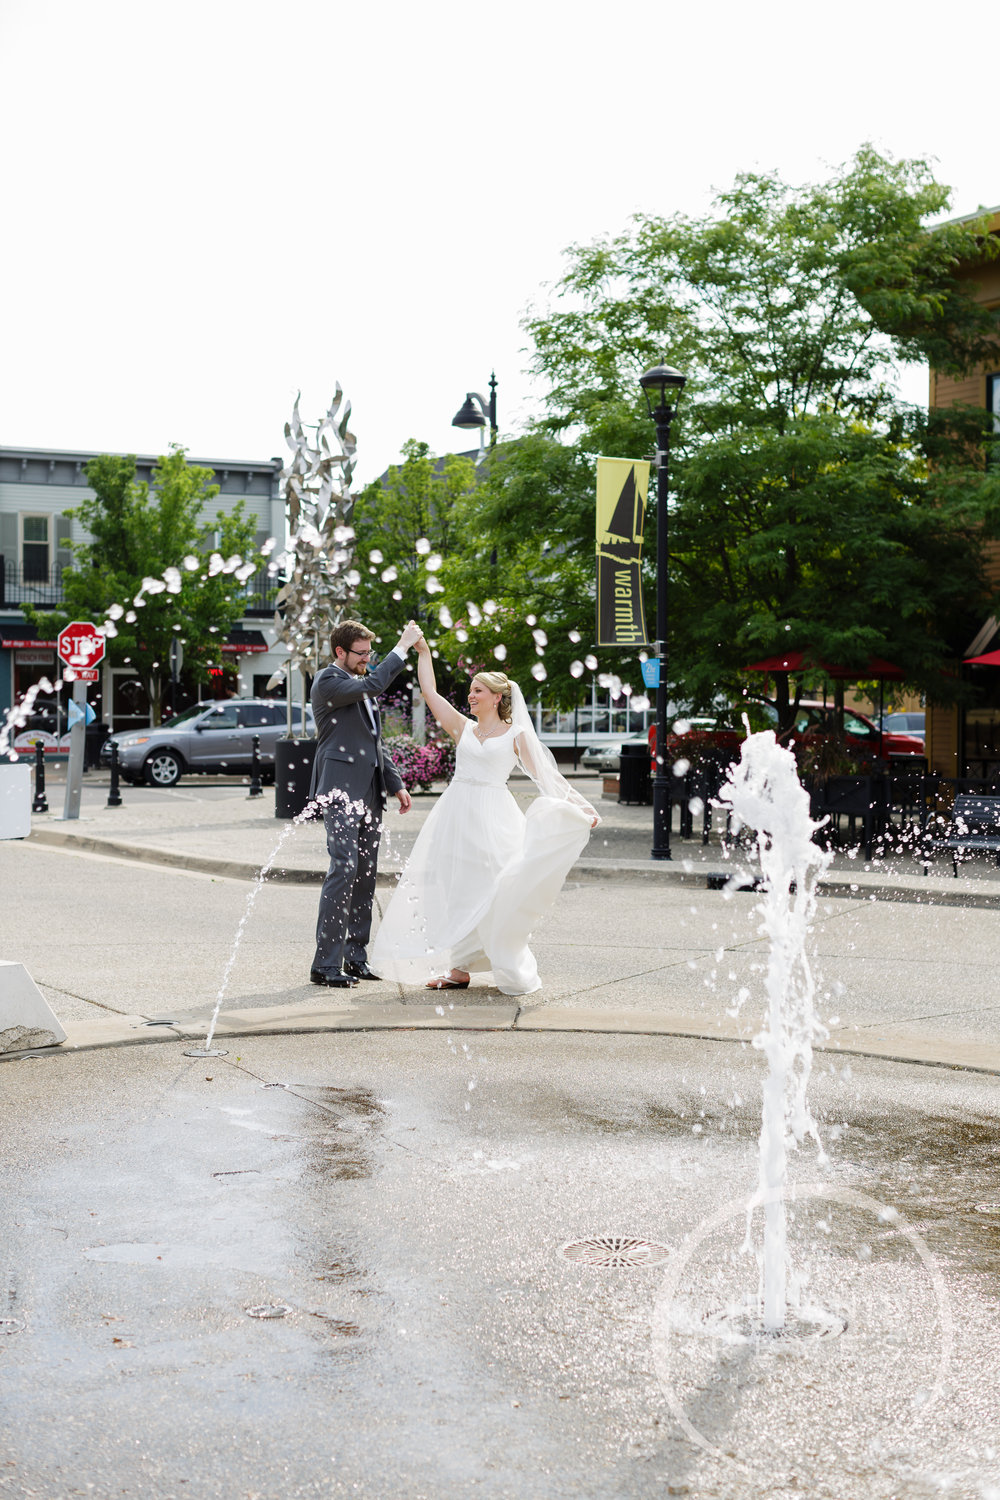 057_grandrapids_wedding_photographer_melaniereyes.JPG